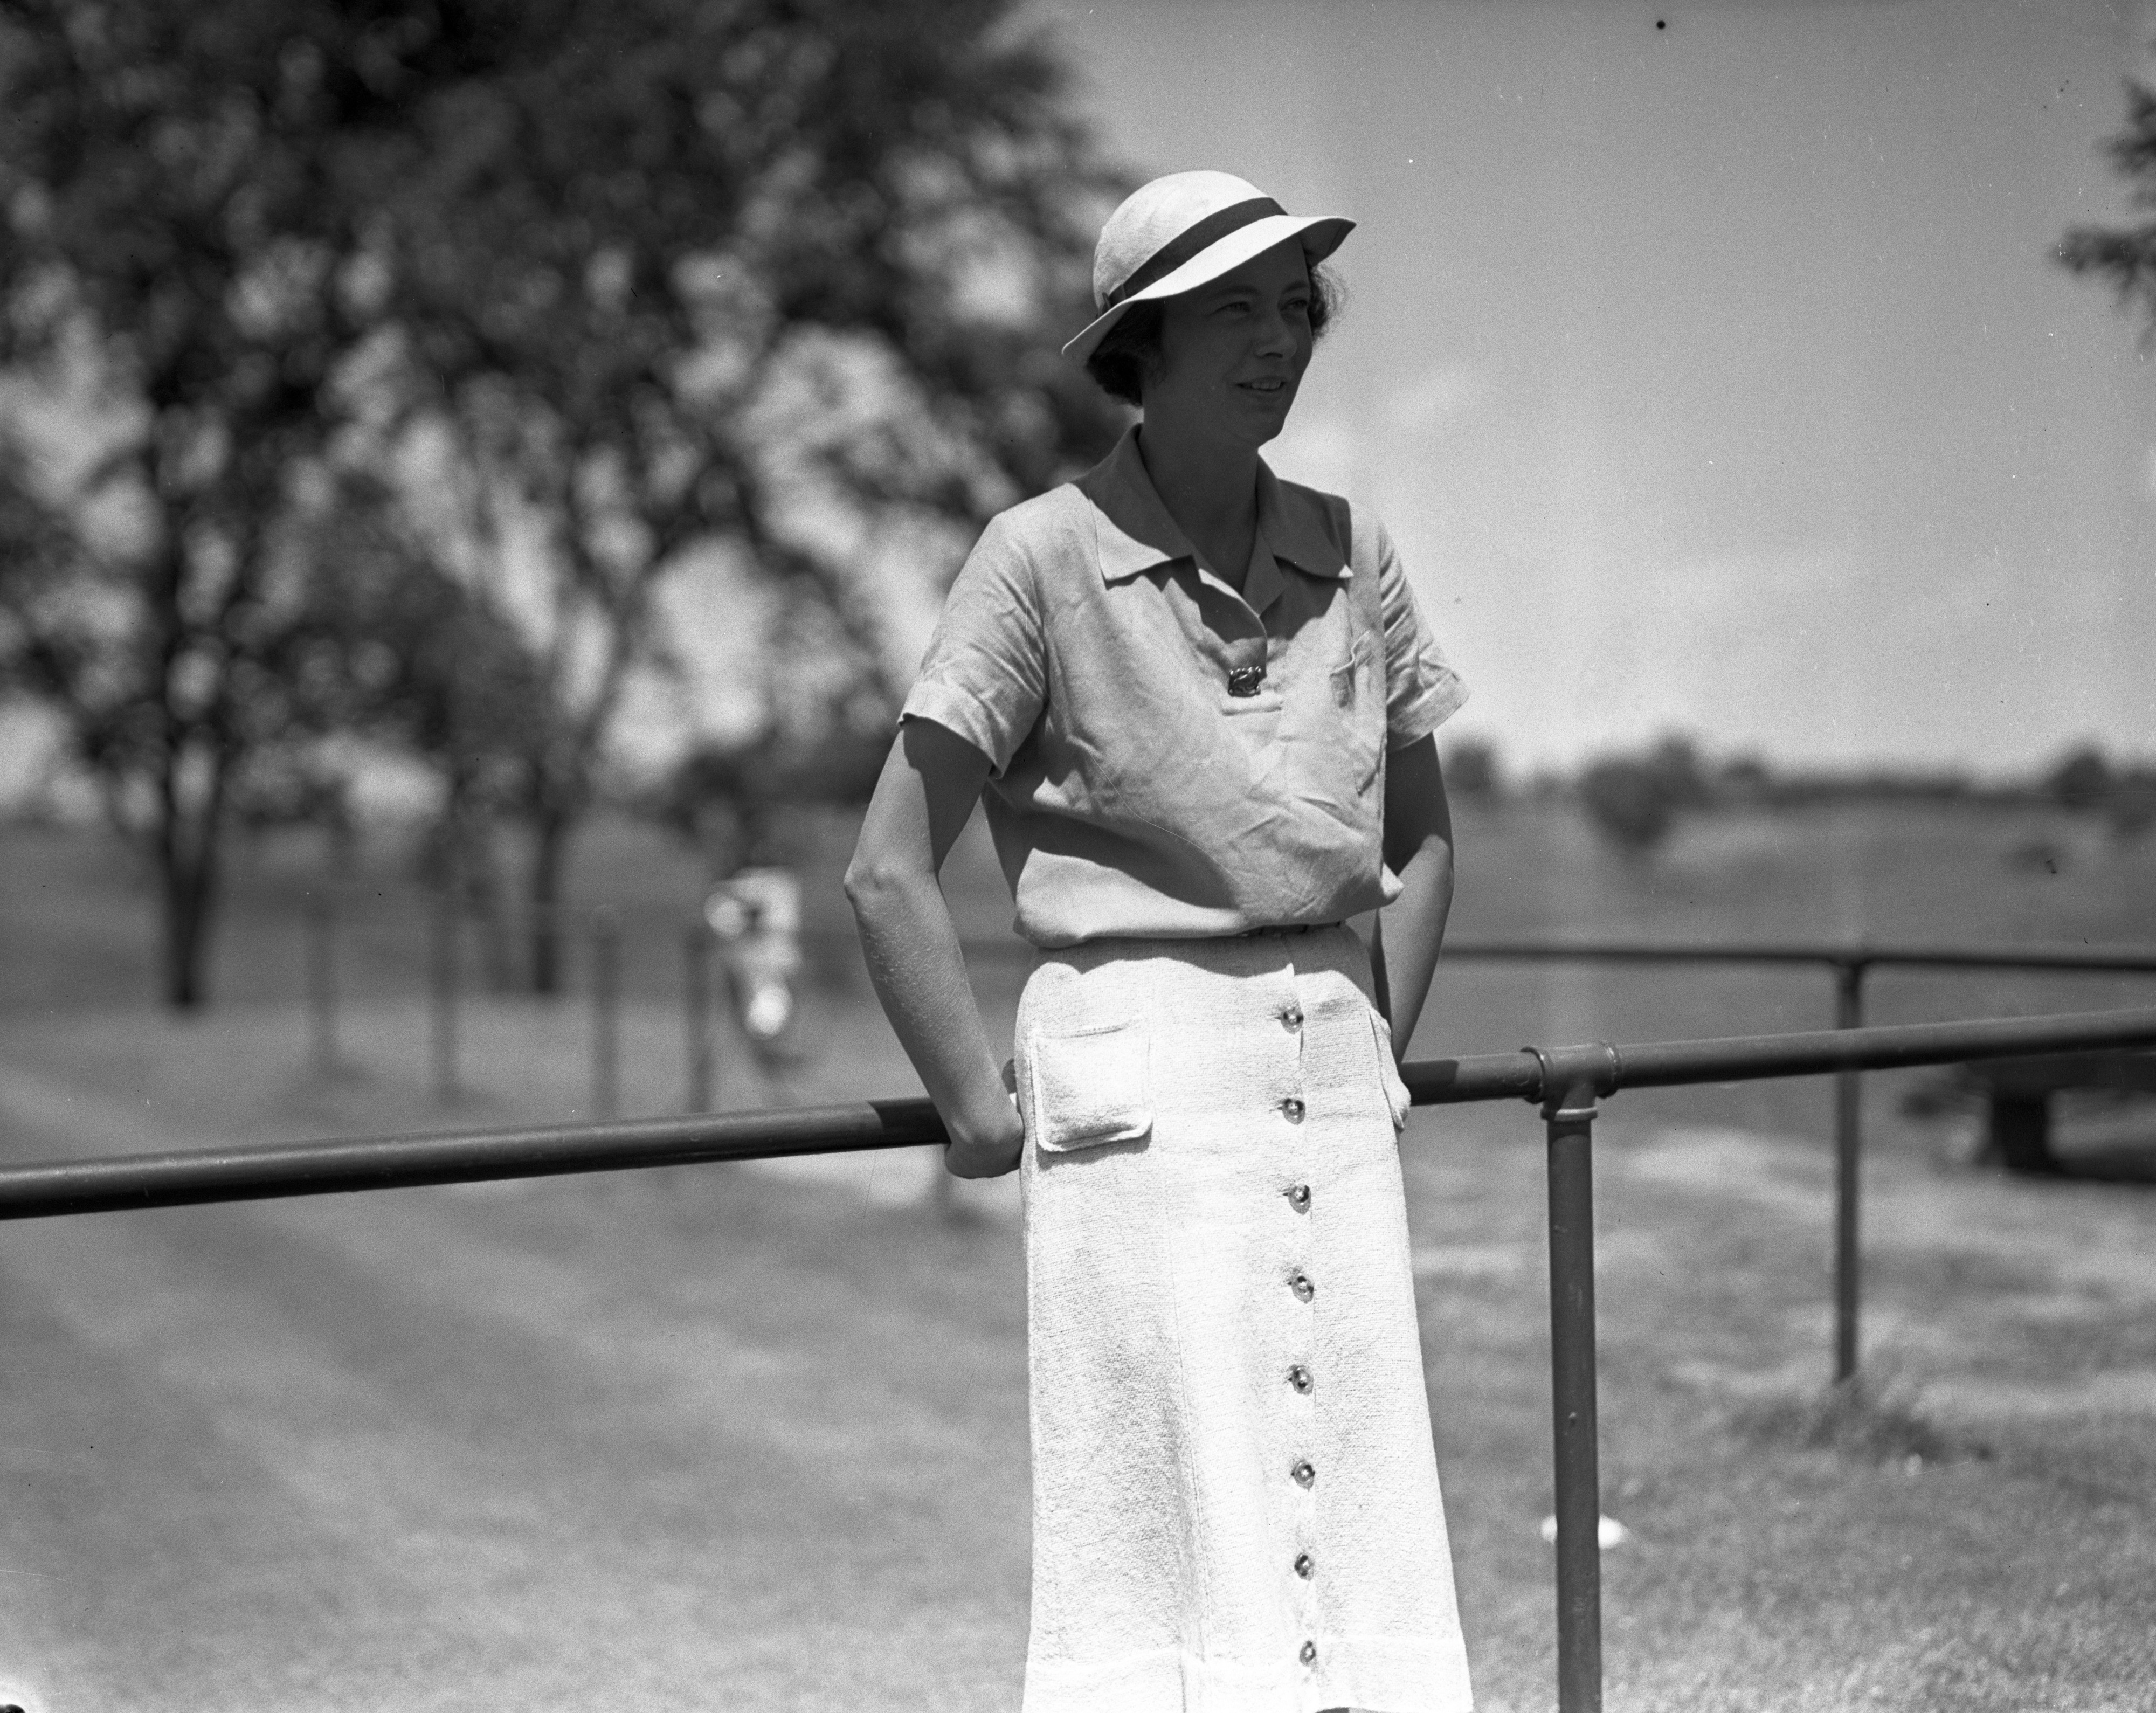 Jean Kyer at Plum Hollow Golf Course, July 1937 image